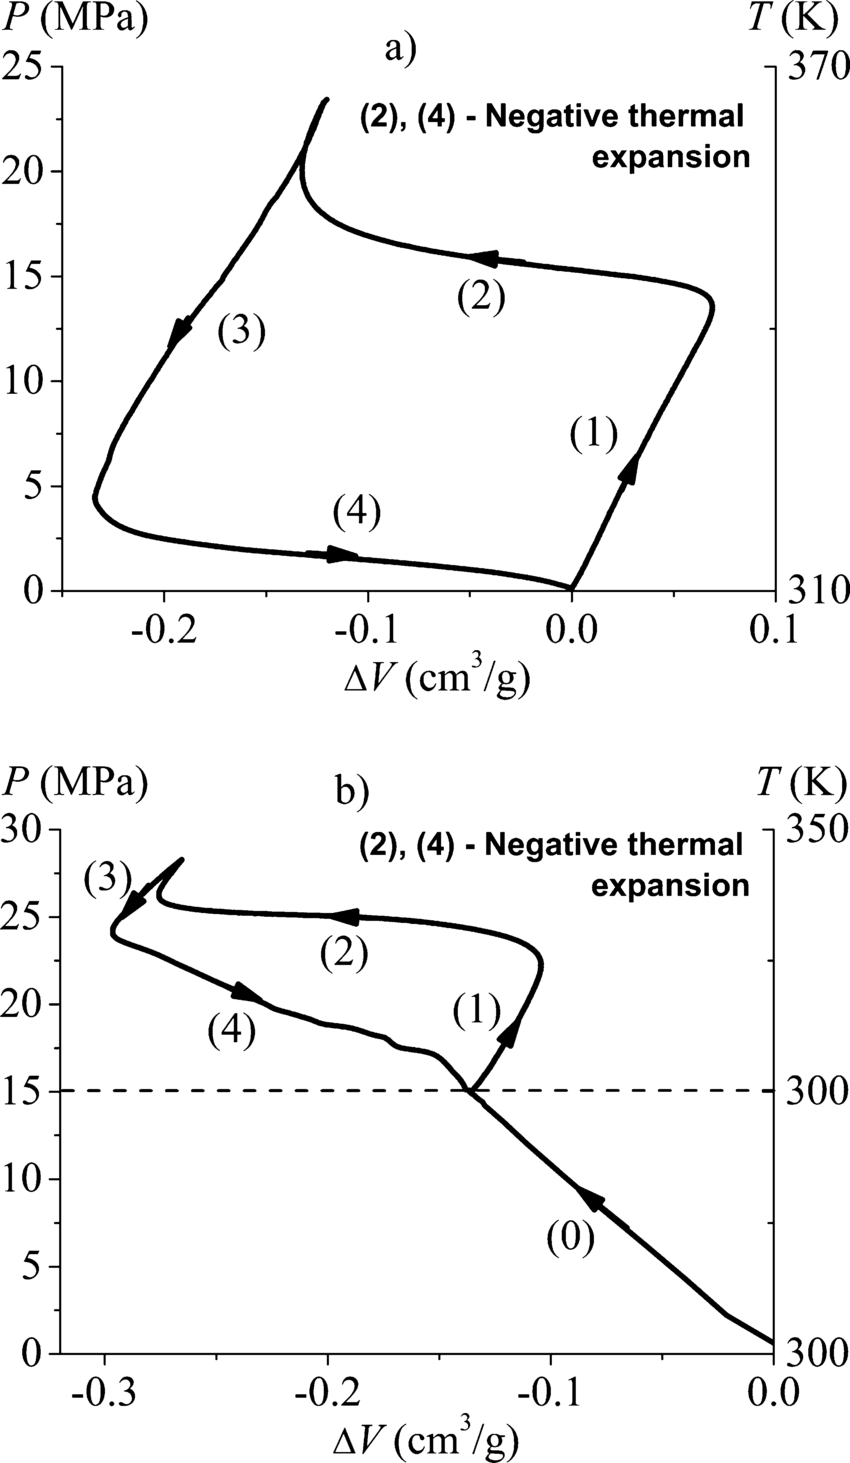 hight resolution of pv diagrams during heating cooling cycles of a wc8 water